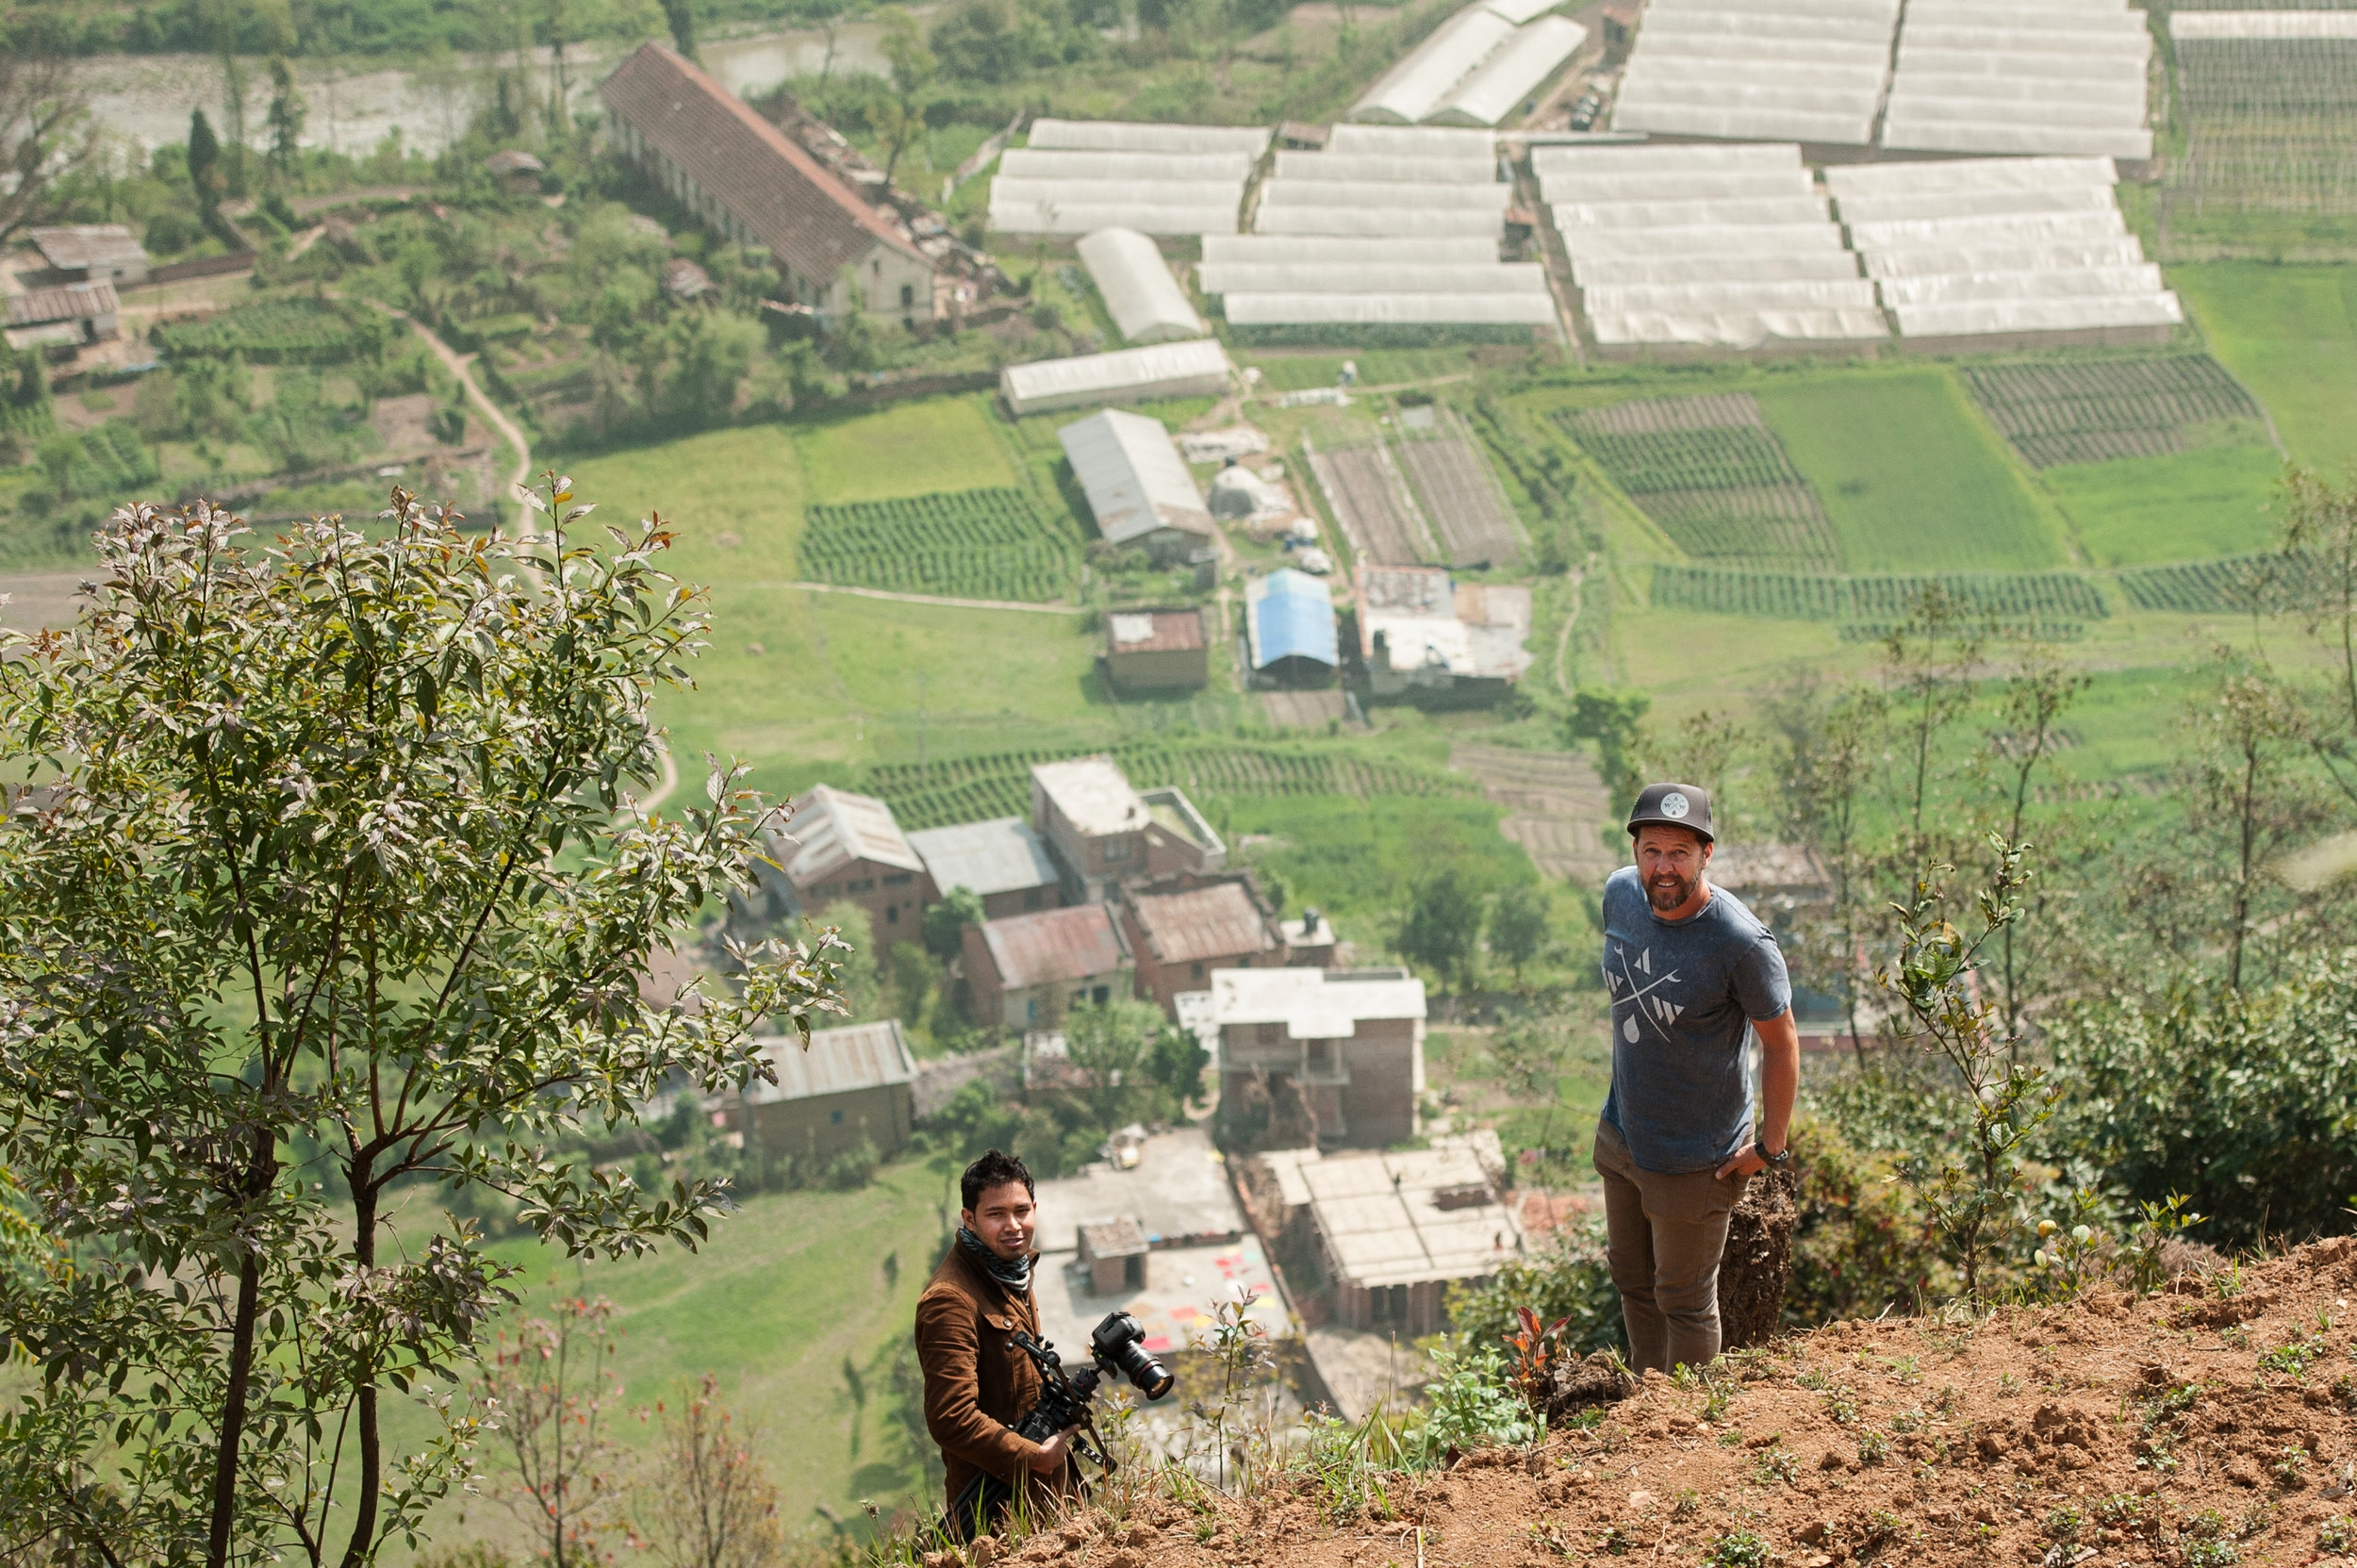 Bikash Pariyar (L) from Nepal and Dathan Graham (R) work together to document Khokana Leper Colony from above.